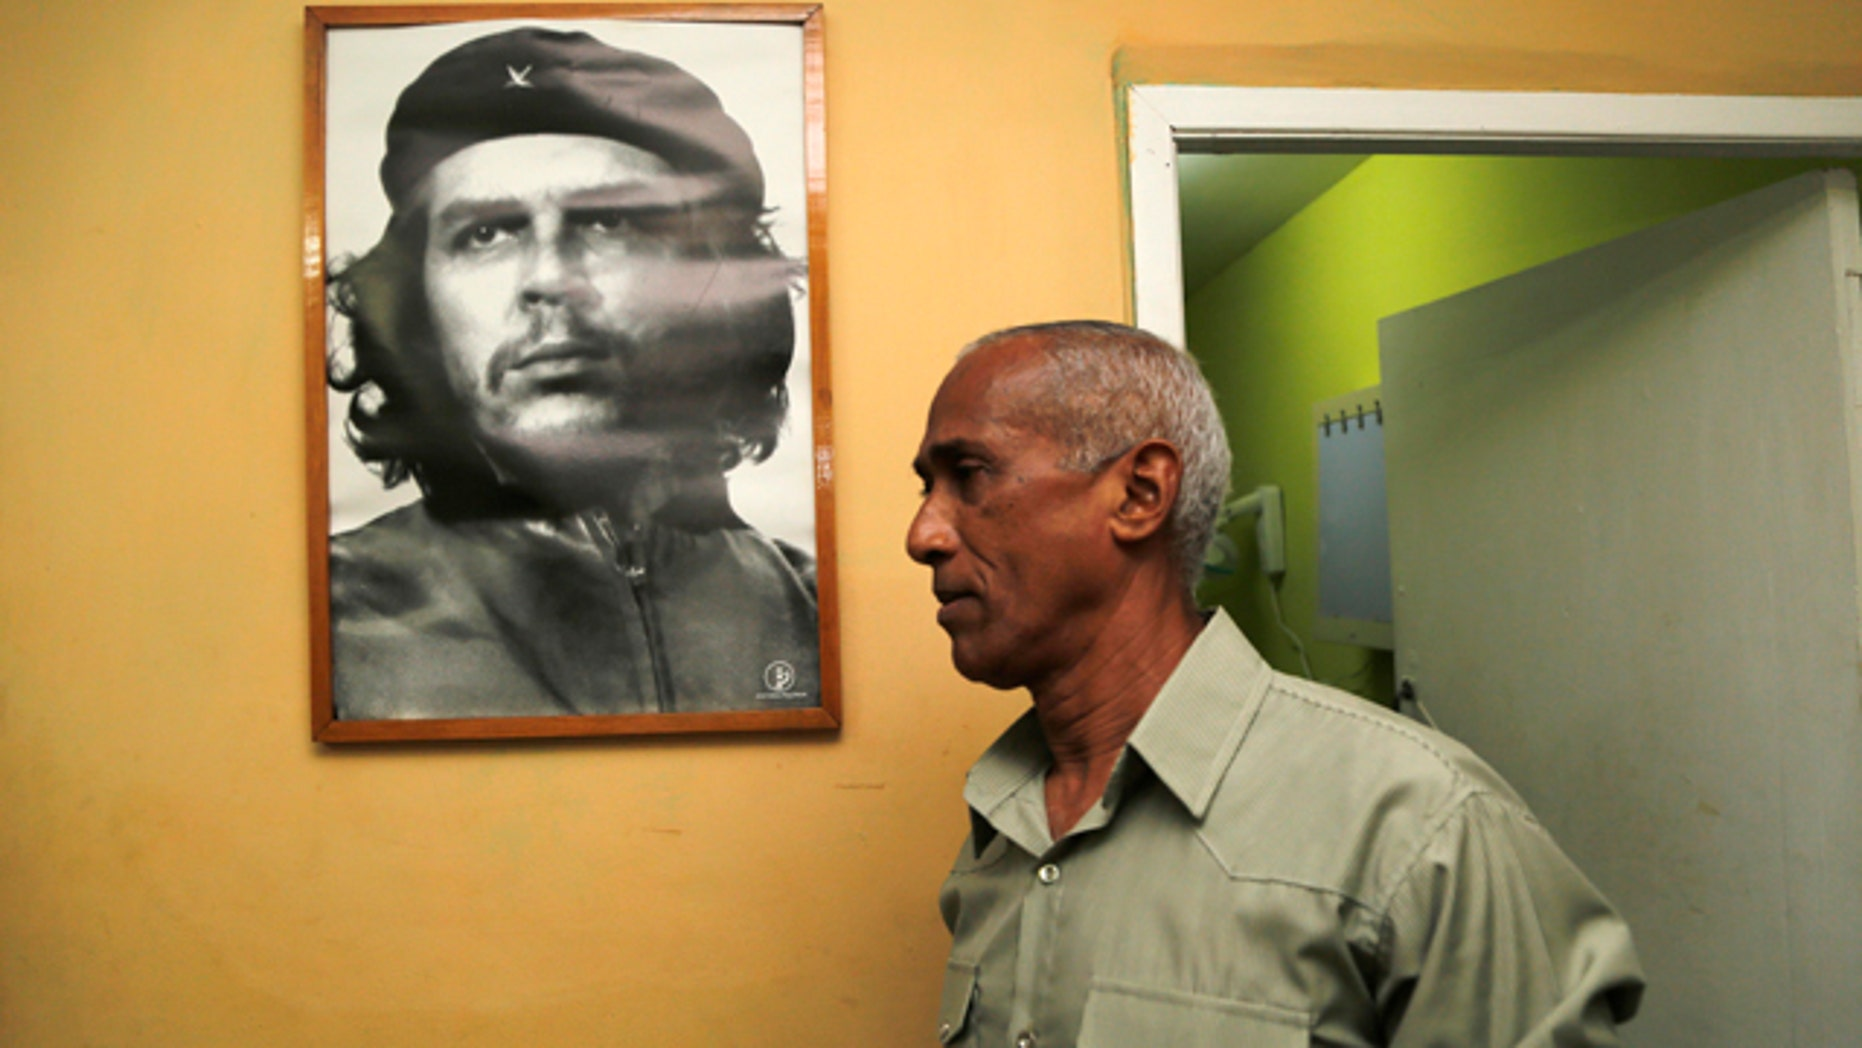 April 19, 2015: Dissident and candidate Hildebrando Chaviano walks beside a portrait of revolutionary leader Che Guevara before casting his ballot during Cuba's municipal elections at a polling station in Havana. (AP Photo/Desmond Boylan)